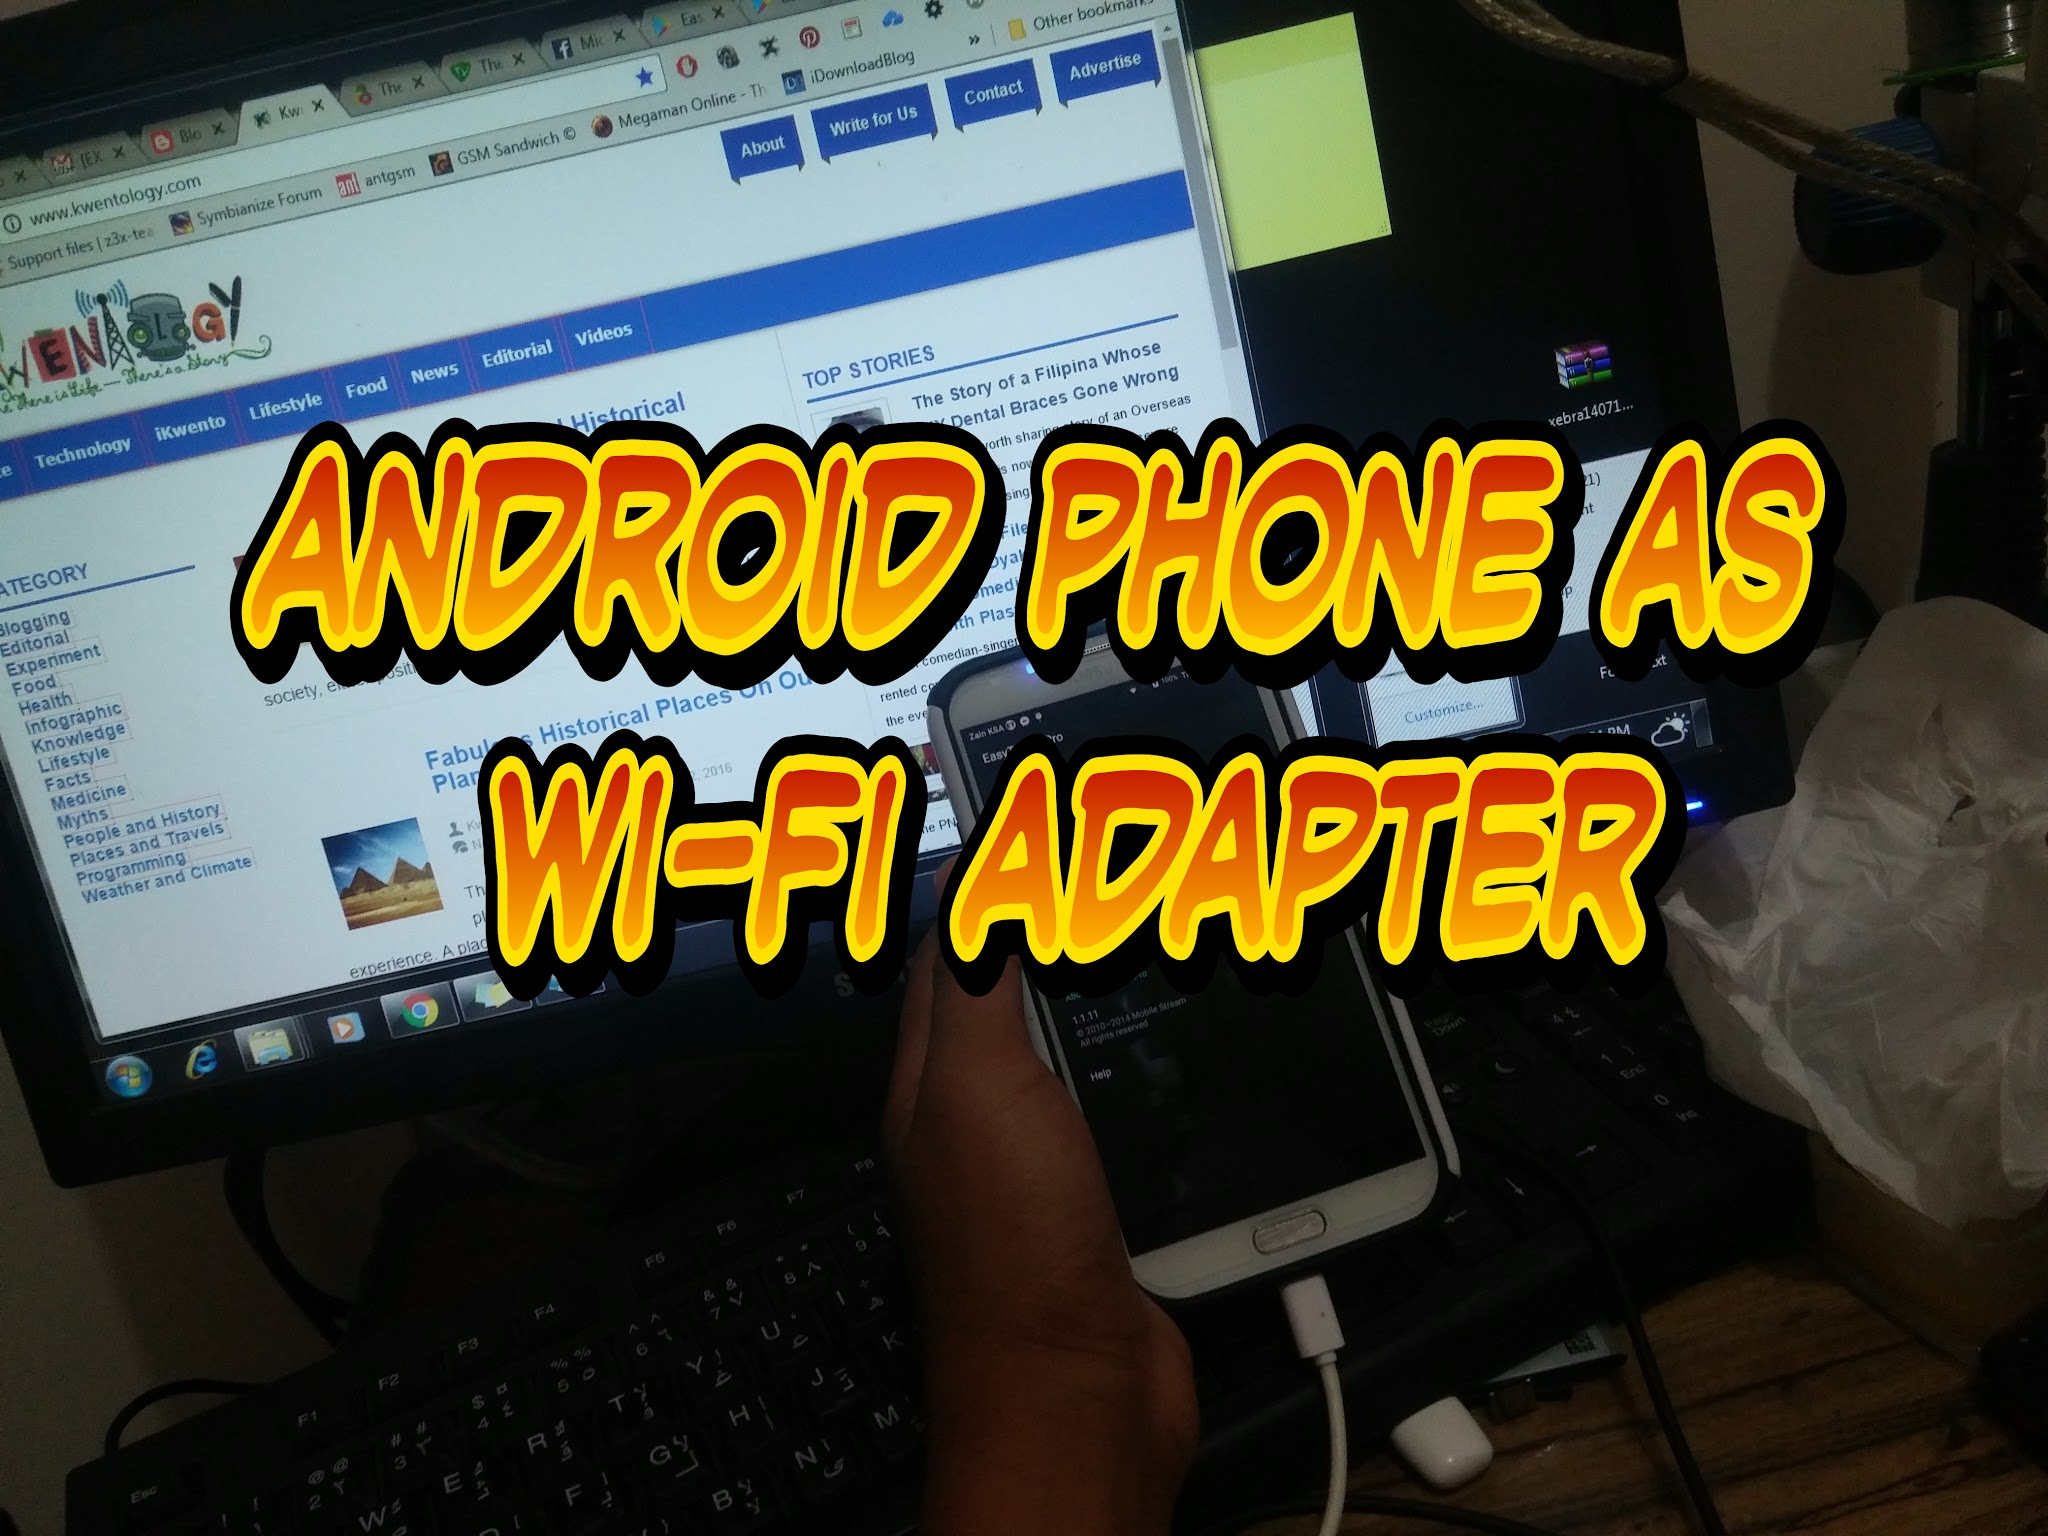 Image of How do you tether your phone to your computer? How can I share Internet from my Android phone to laptop? How can you use the Internet from your phone to your computer? How do you use your phone as a hotspot? How To Use Android Phone As Wi-Fi Adapter. wi fi - Can I use my Android device as Wi-Fi Adapter for my PC? Can i use my android phone as a wifi adapter for my computer? Can my phone replace a WiFi adapter to connect my PC to my router? Use Your Android as a WiFi Dongle / Wifi Adapter to Access internet. Tethering my phone to PC for internet. How To Turn Your Android Phone Into Wireless USB Adapter. Use Android phone as wireless adapter for Ubuntu desktop, use android as wifi router, how to use iphone as wifi adapter